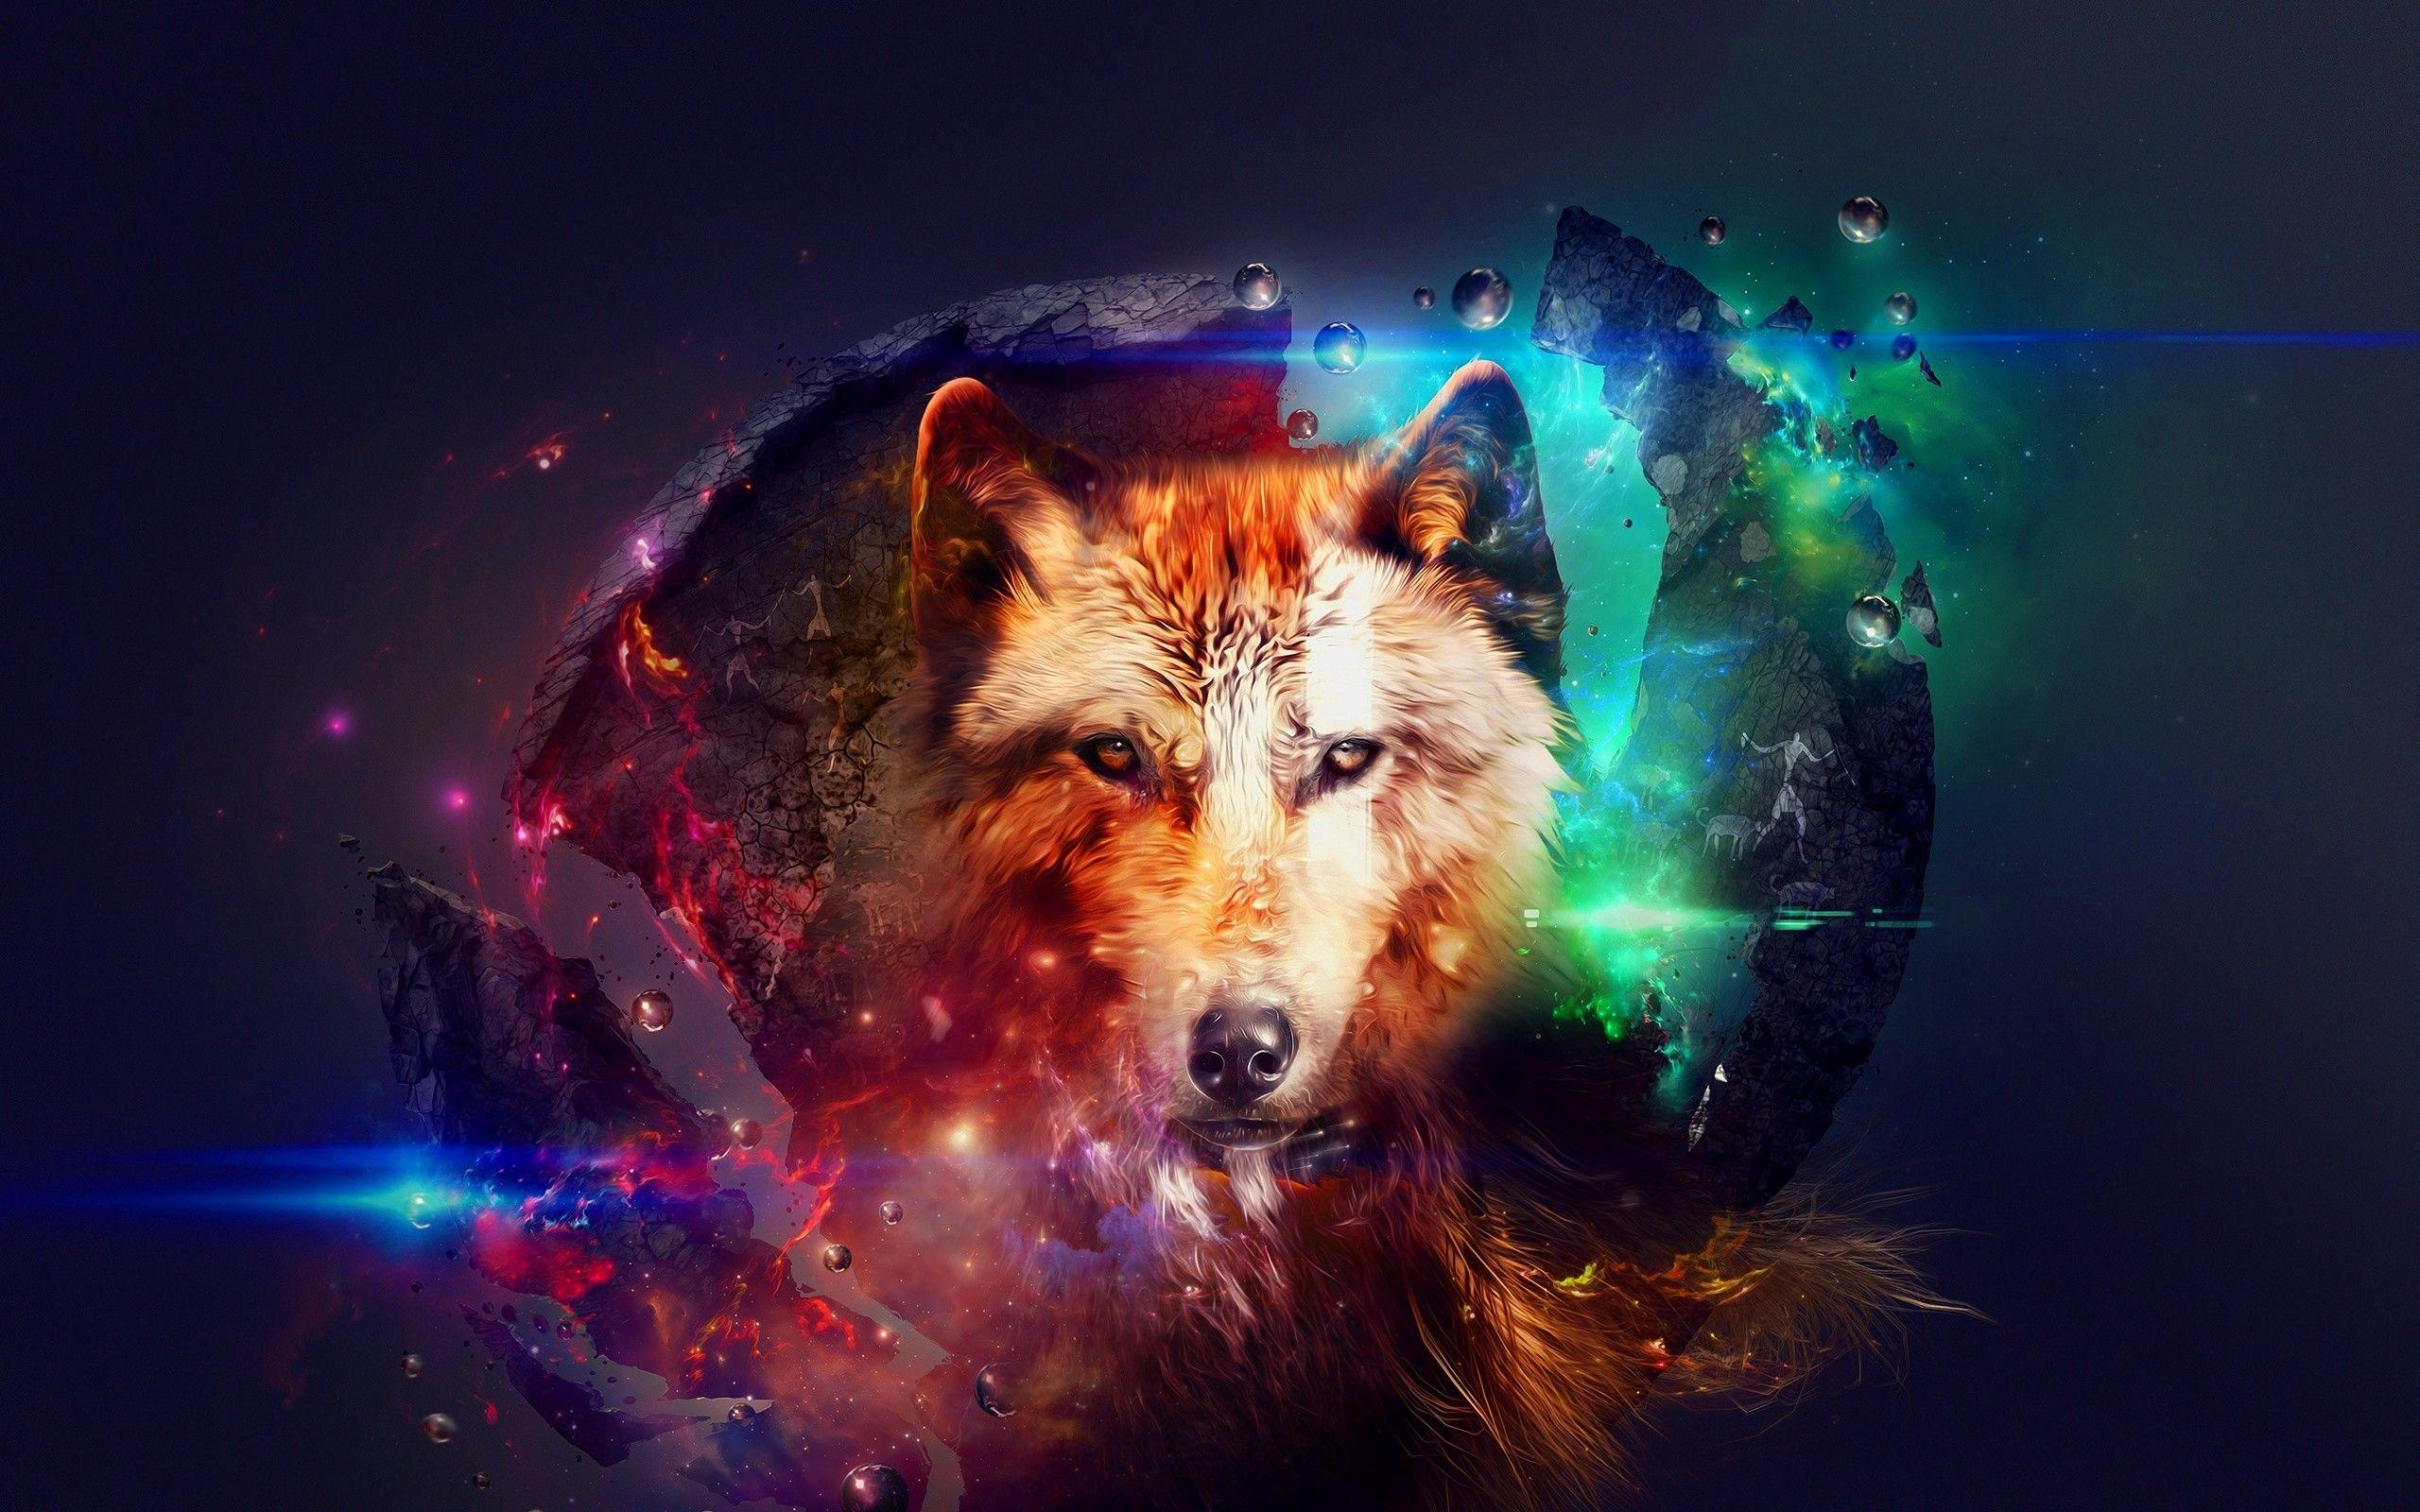 Galaxy Wolf Wallpapers Wallpaper Cave Jpg 2560x1600 Colorful Tumblr